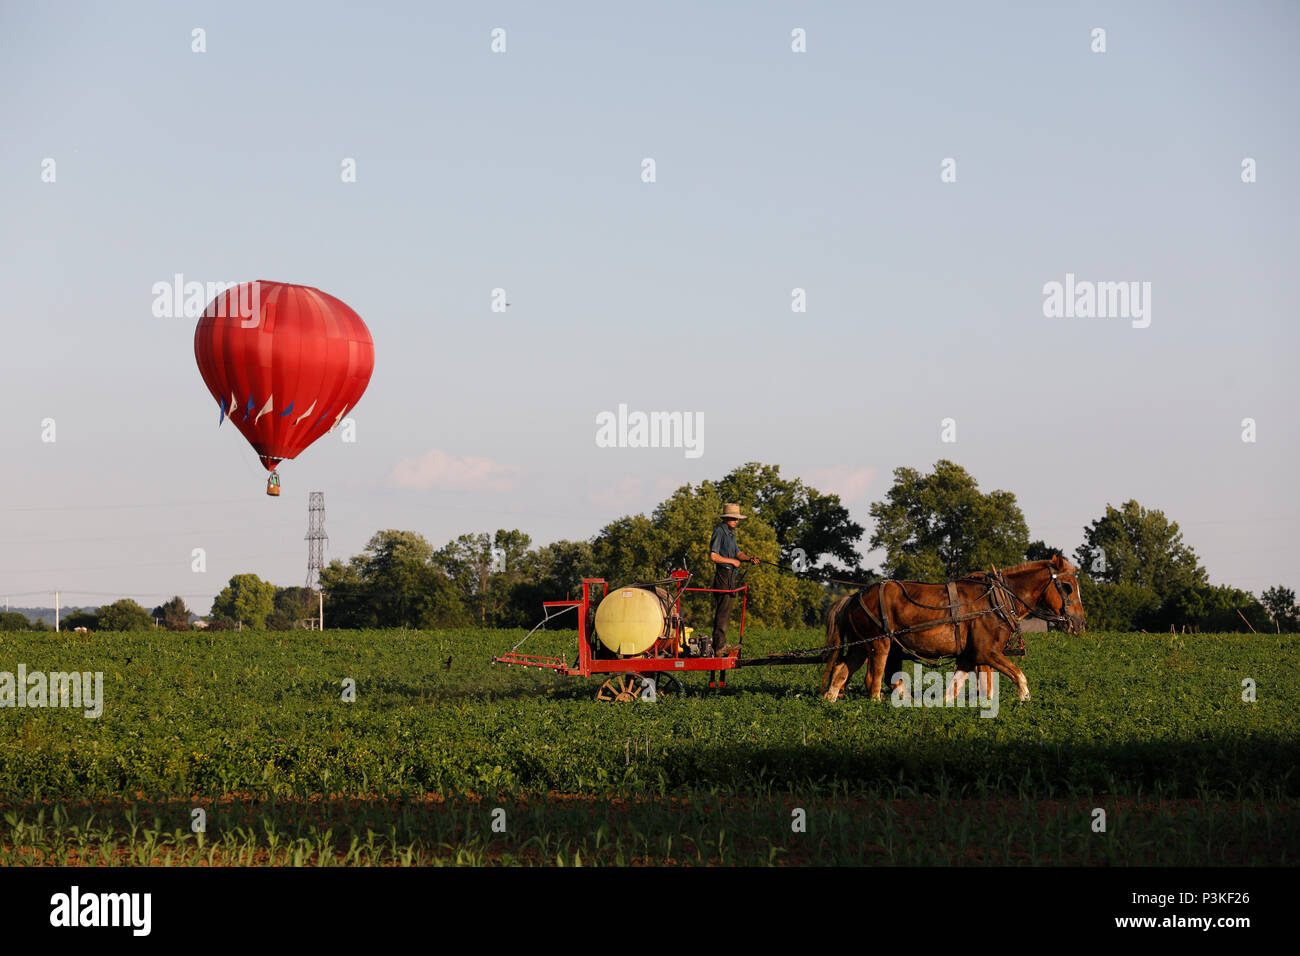 Amish Farmer working in field while hot air balloon rising in background, Lancaster County, Pennsylvania, USA Stock Photo